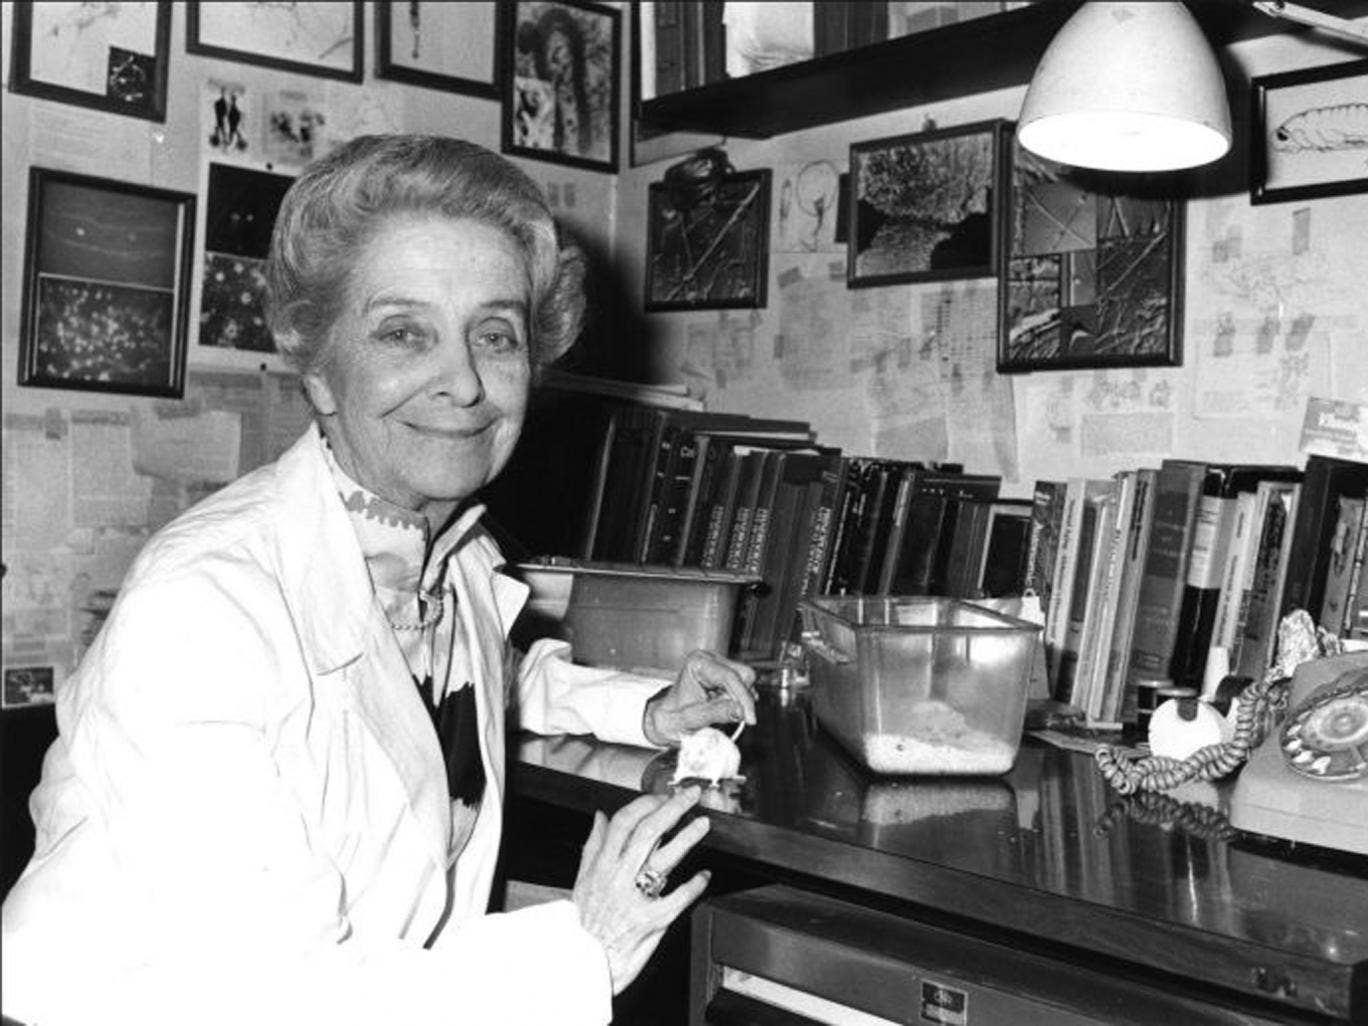 Levi-Montalcini: she attributed her success partly to 'the habit of underestimating obstacles'